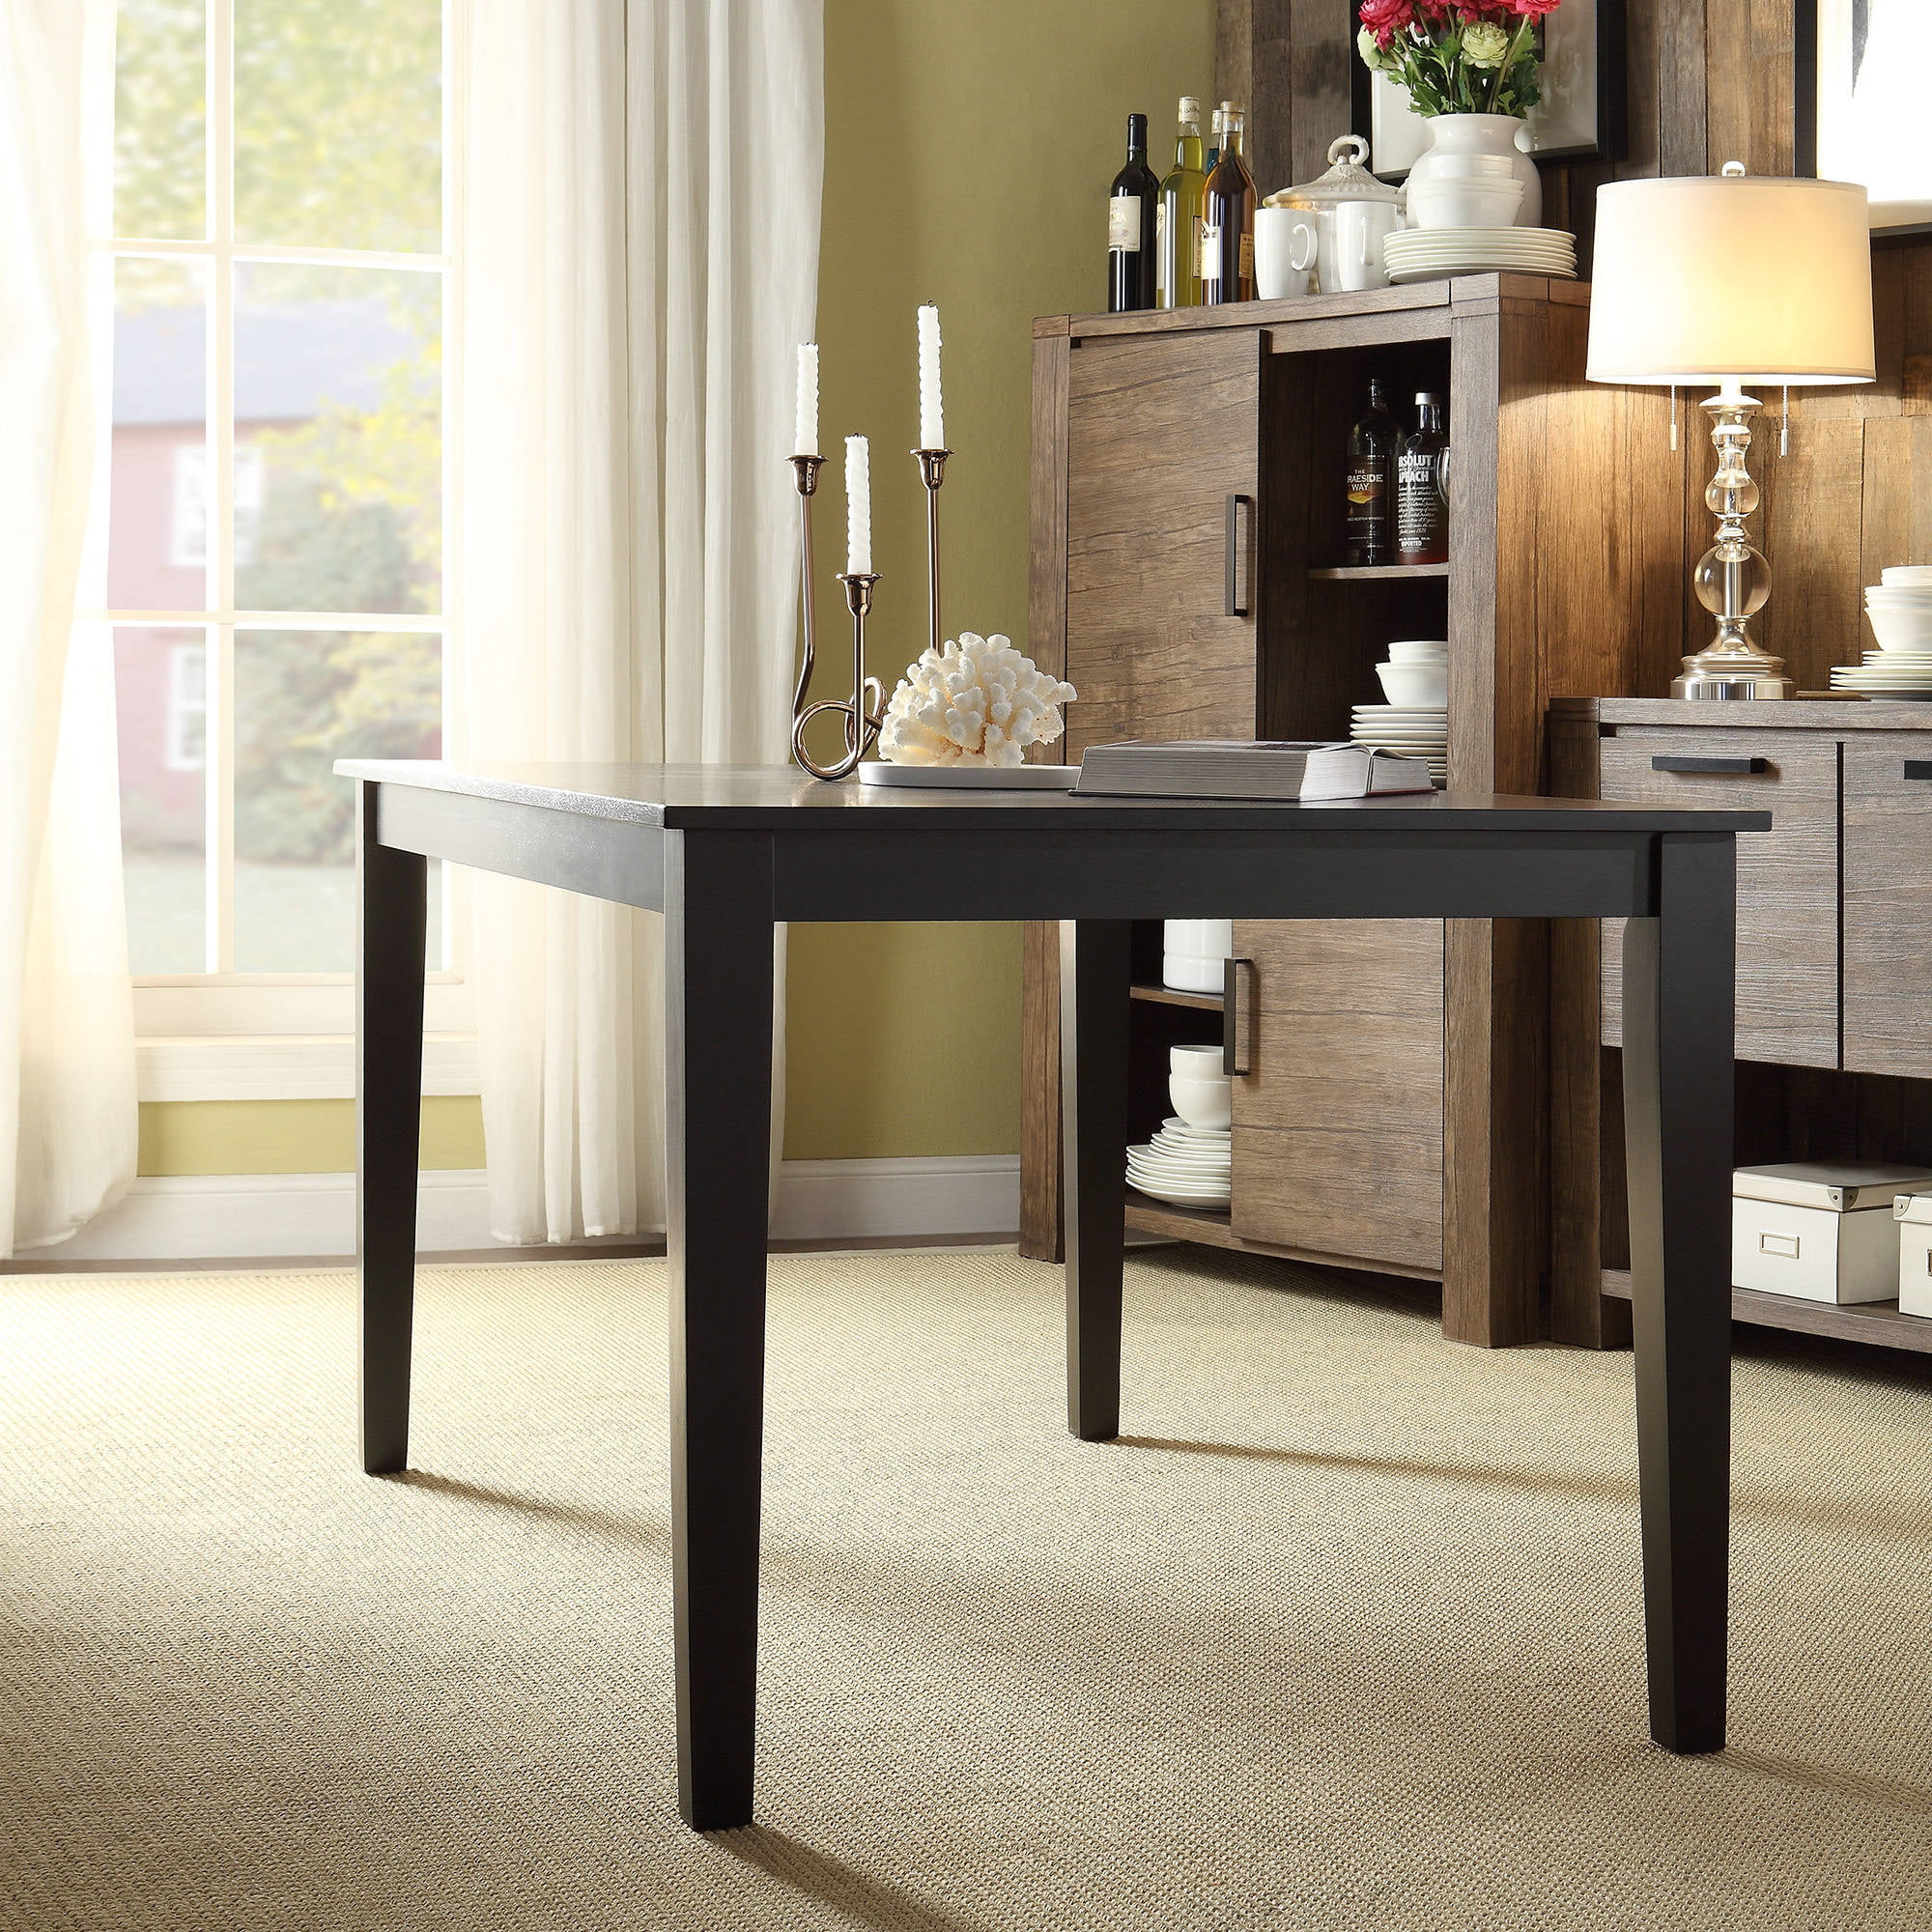 Lexington Large Dining Table, Black - Walmart.com